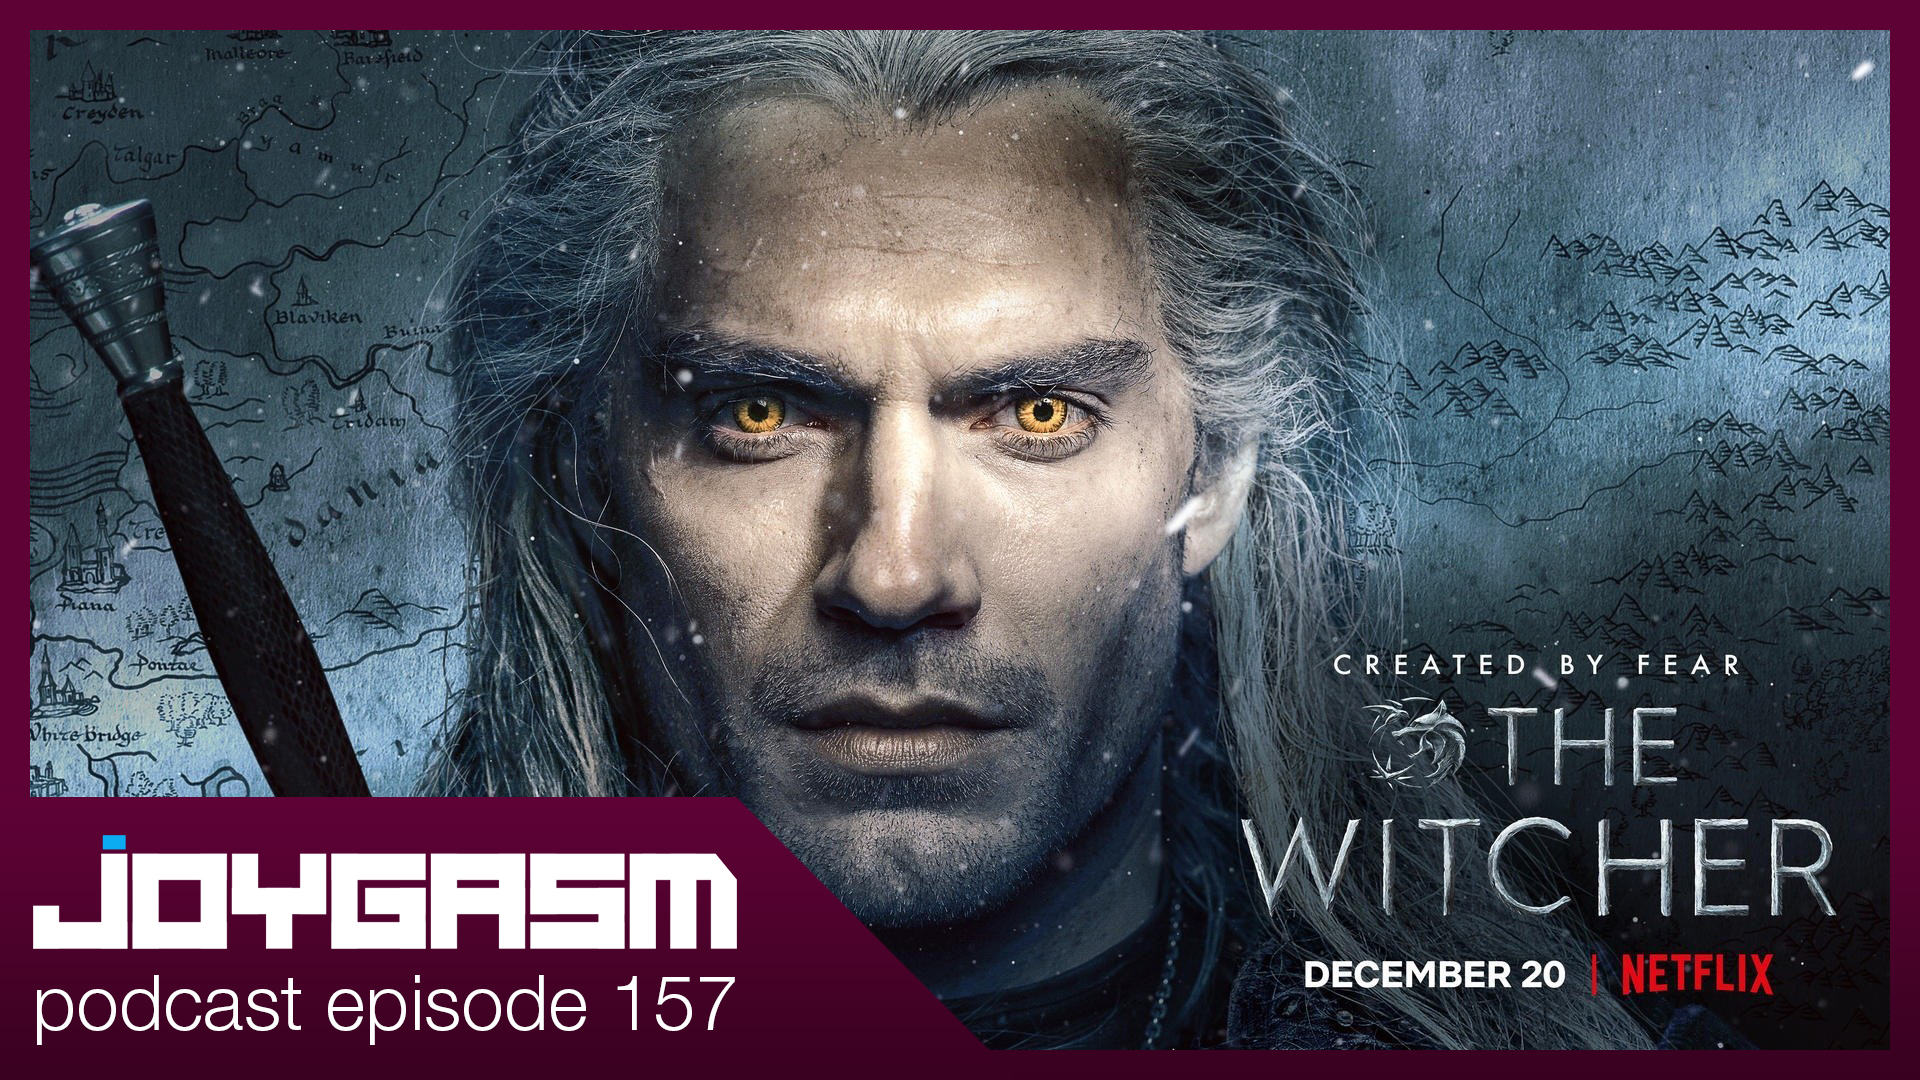 Ep. 157: Netflix The Witcher Season 1 Review